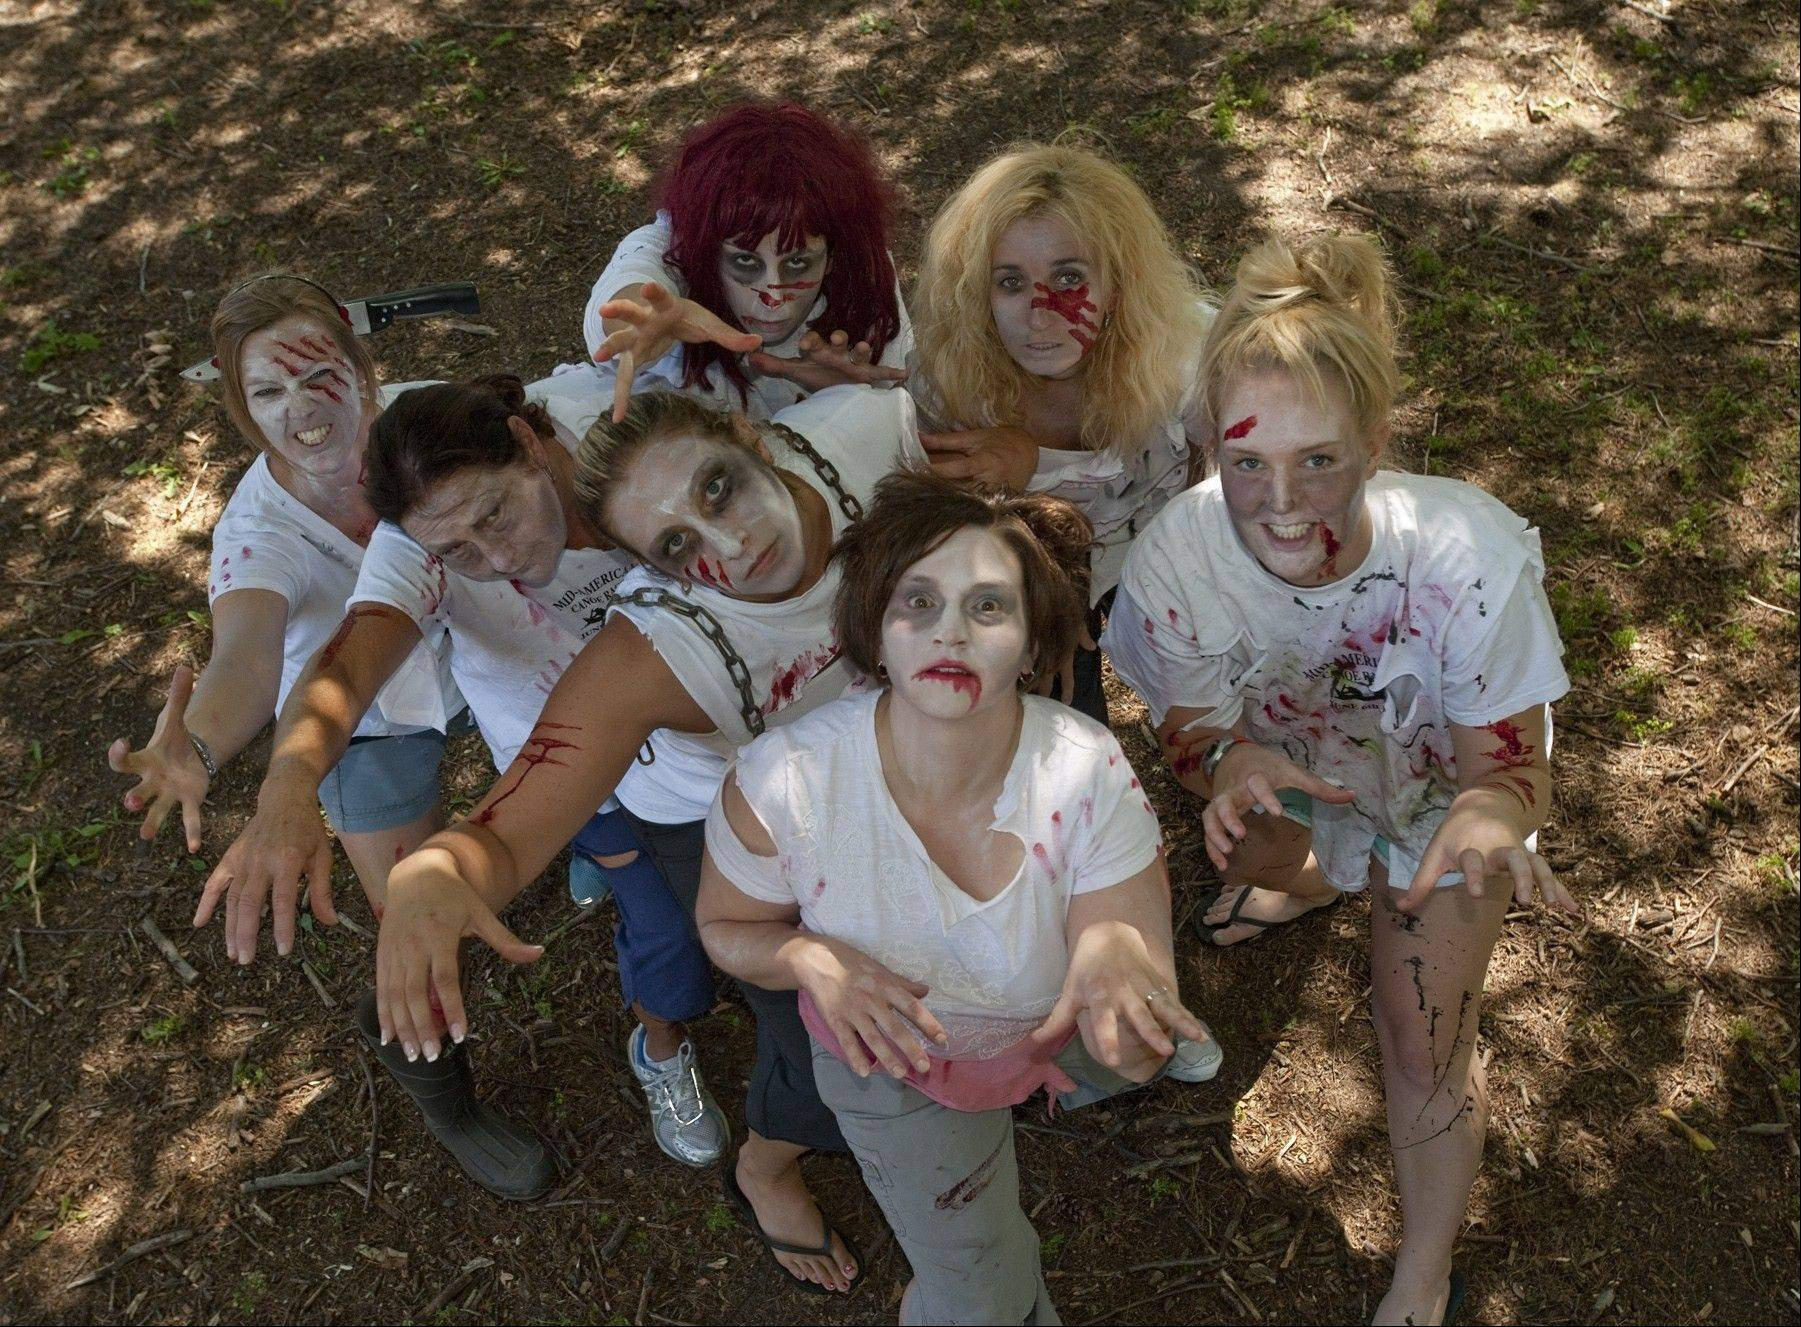 The living dead will infest Blackberry Farm on Oct. 5, when the inaugural Zombie Invasion 5K is held � for those who dare.